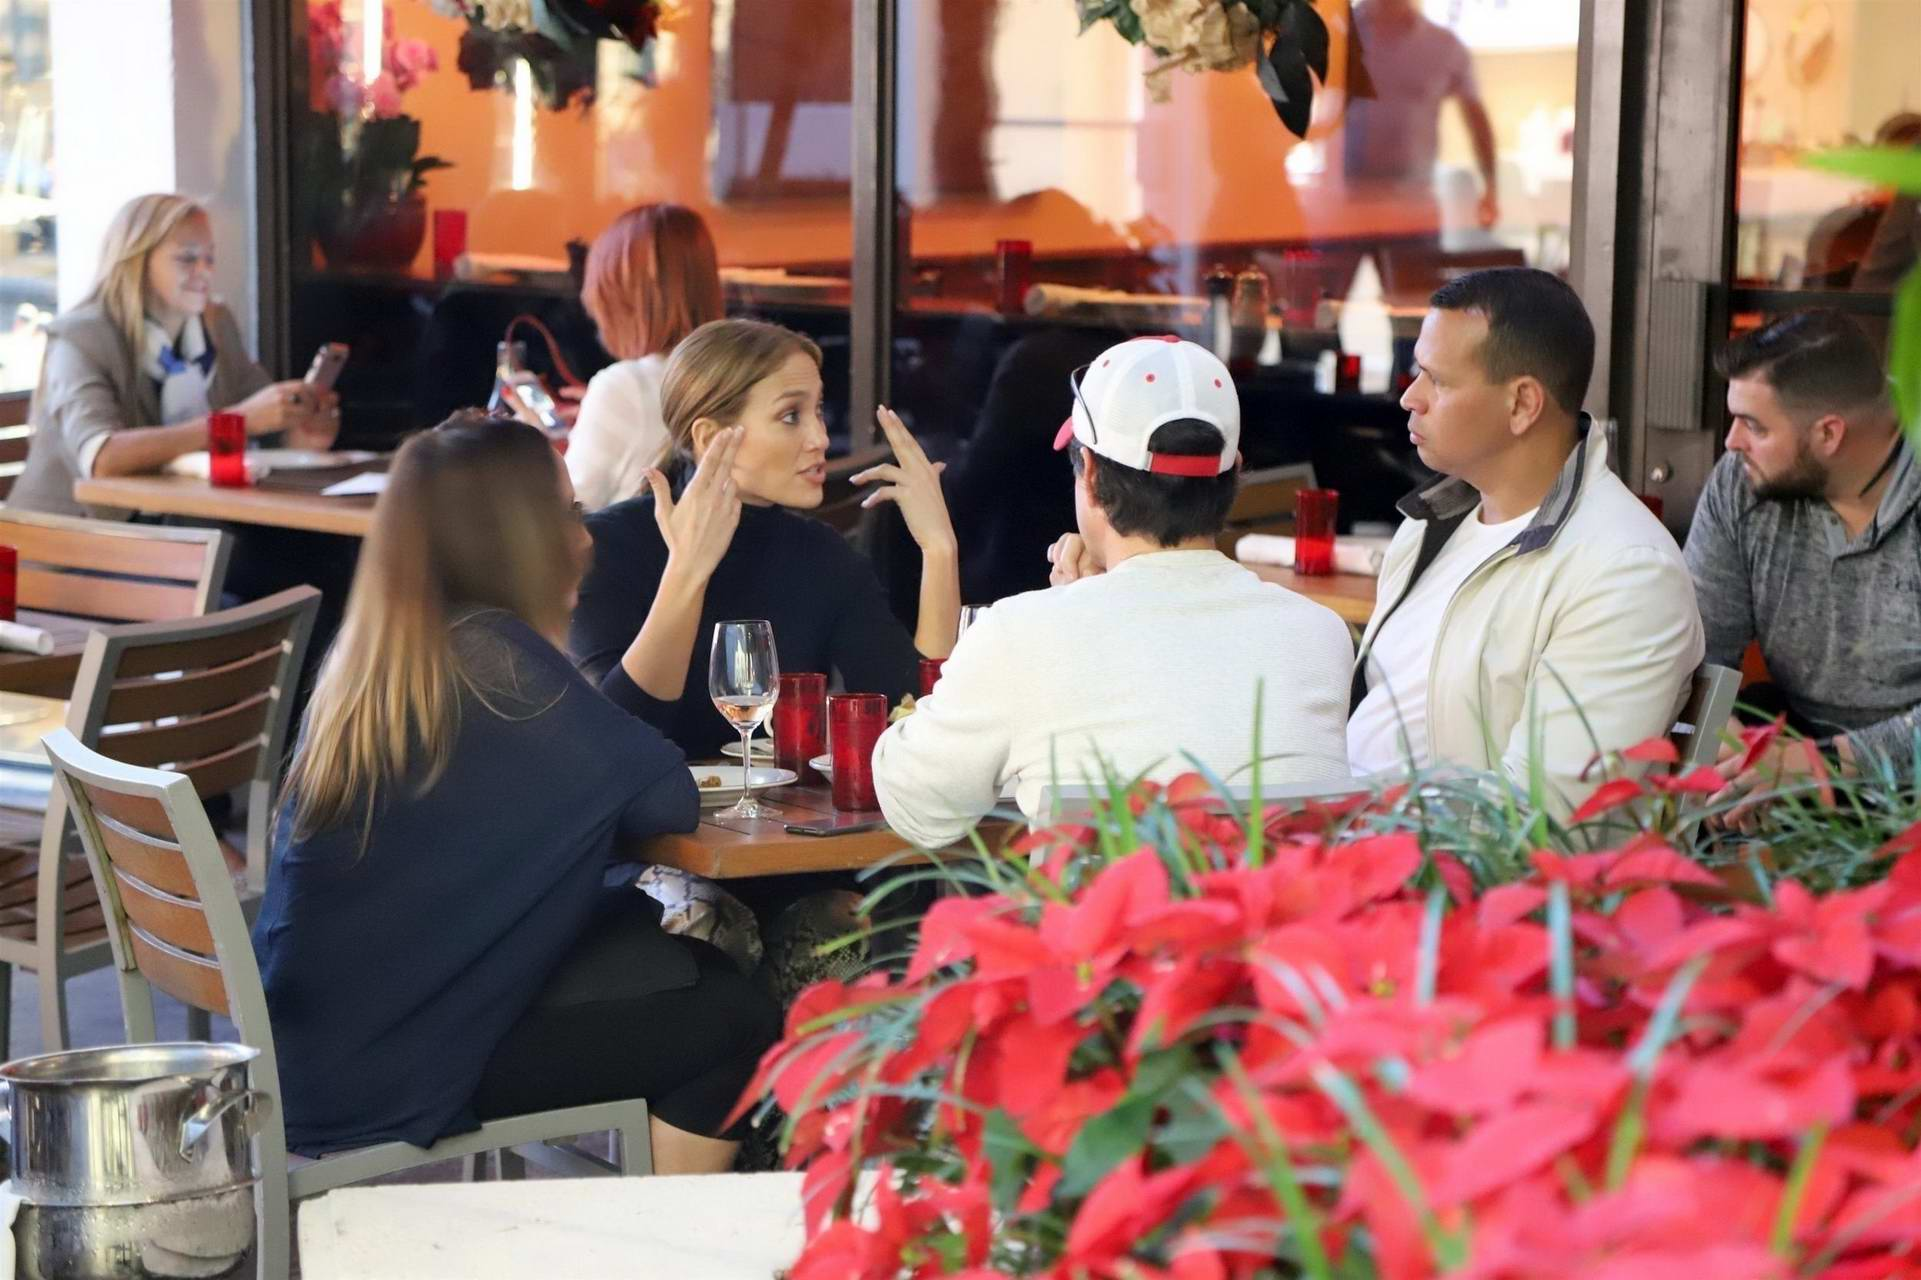 Jennifer Lopez dines with Alex Rodriguez and friends at a restaurant in Miami, Florida